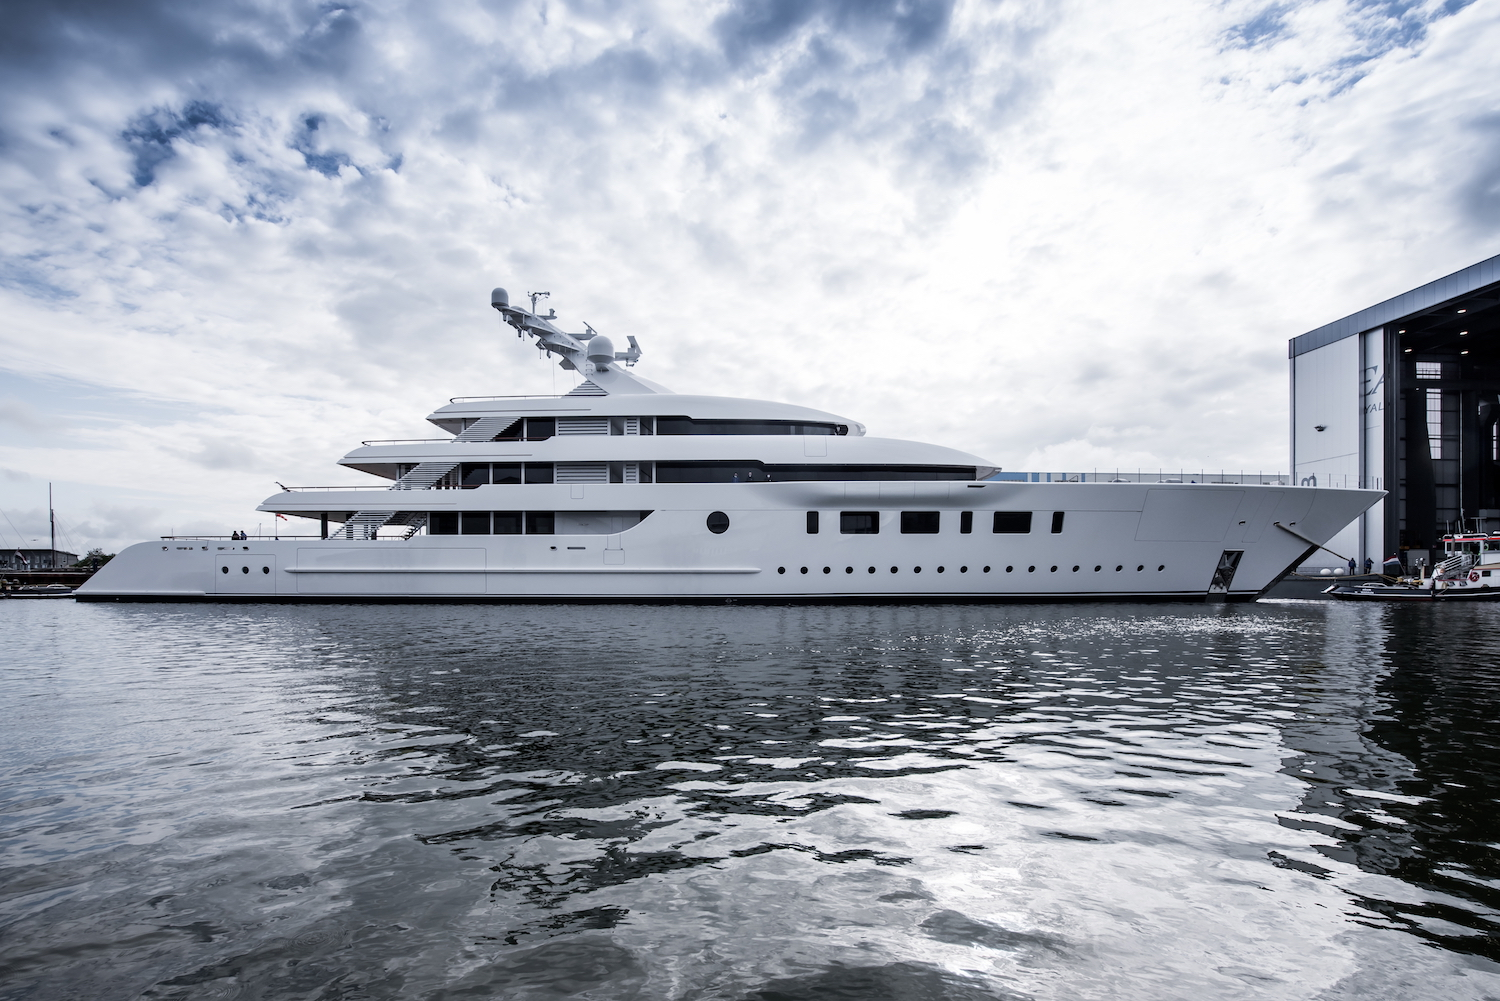 95m Feadship superyacht BLISS launched © Feadship